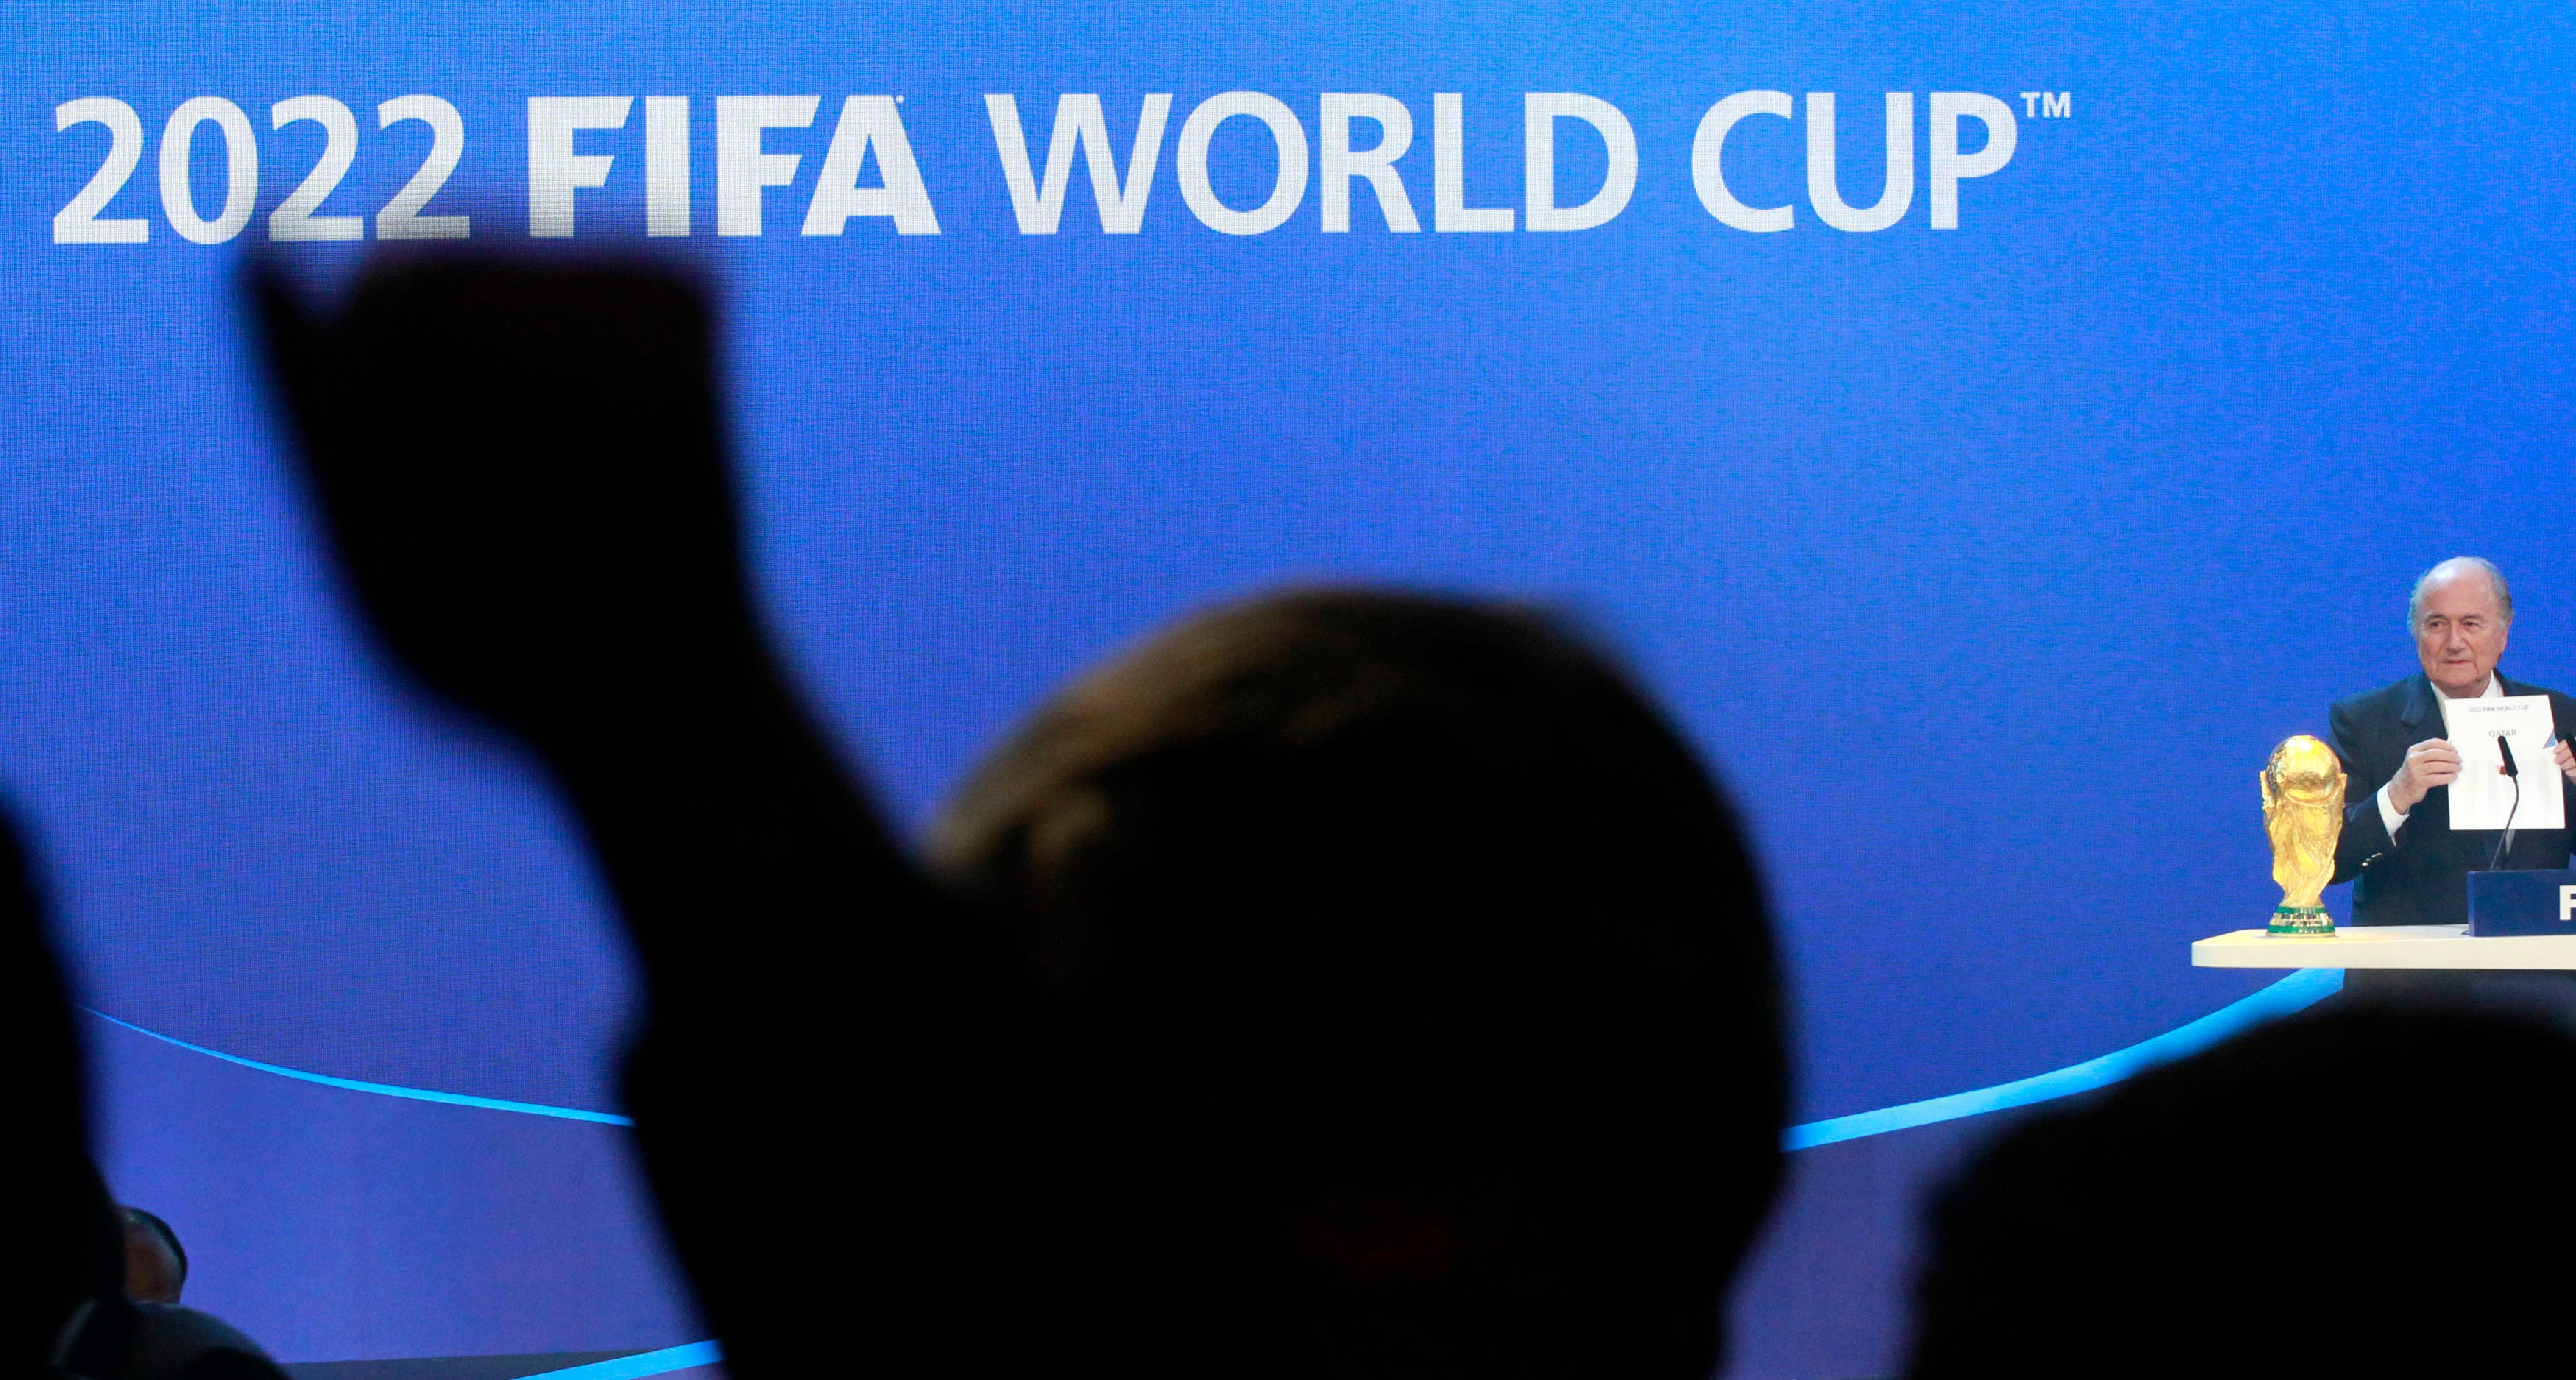 FIFA has faced many questions over the Dec. 2010 decision to award Qatar the 2022 World Cup. (File photo: Reuters)